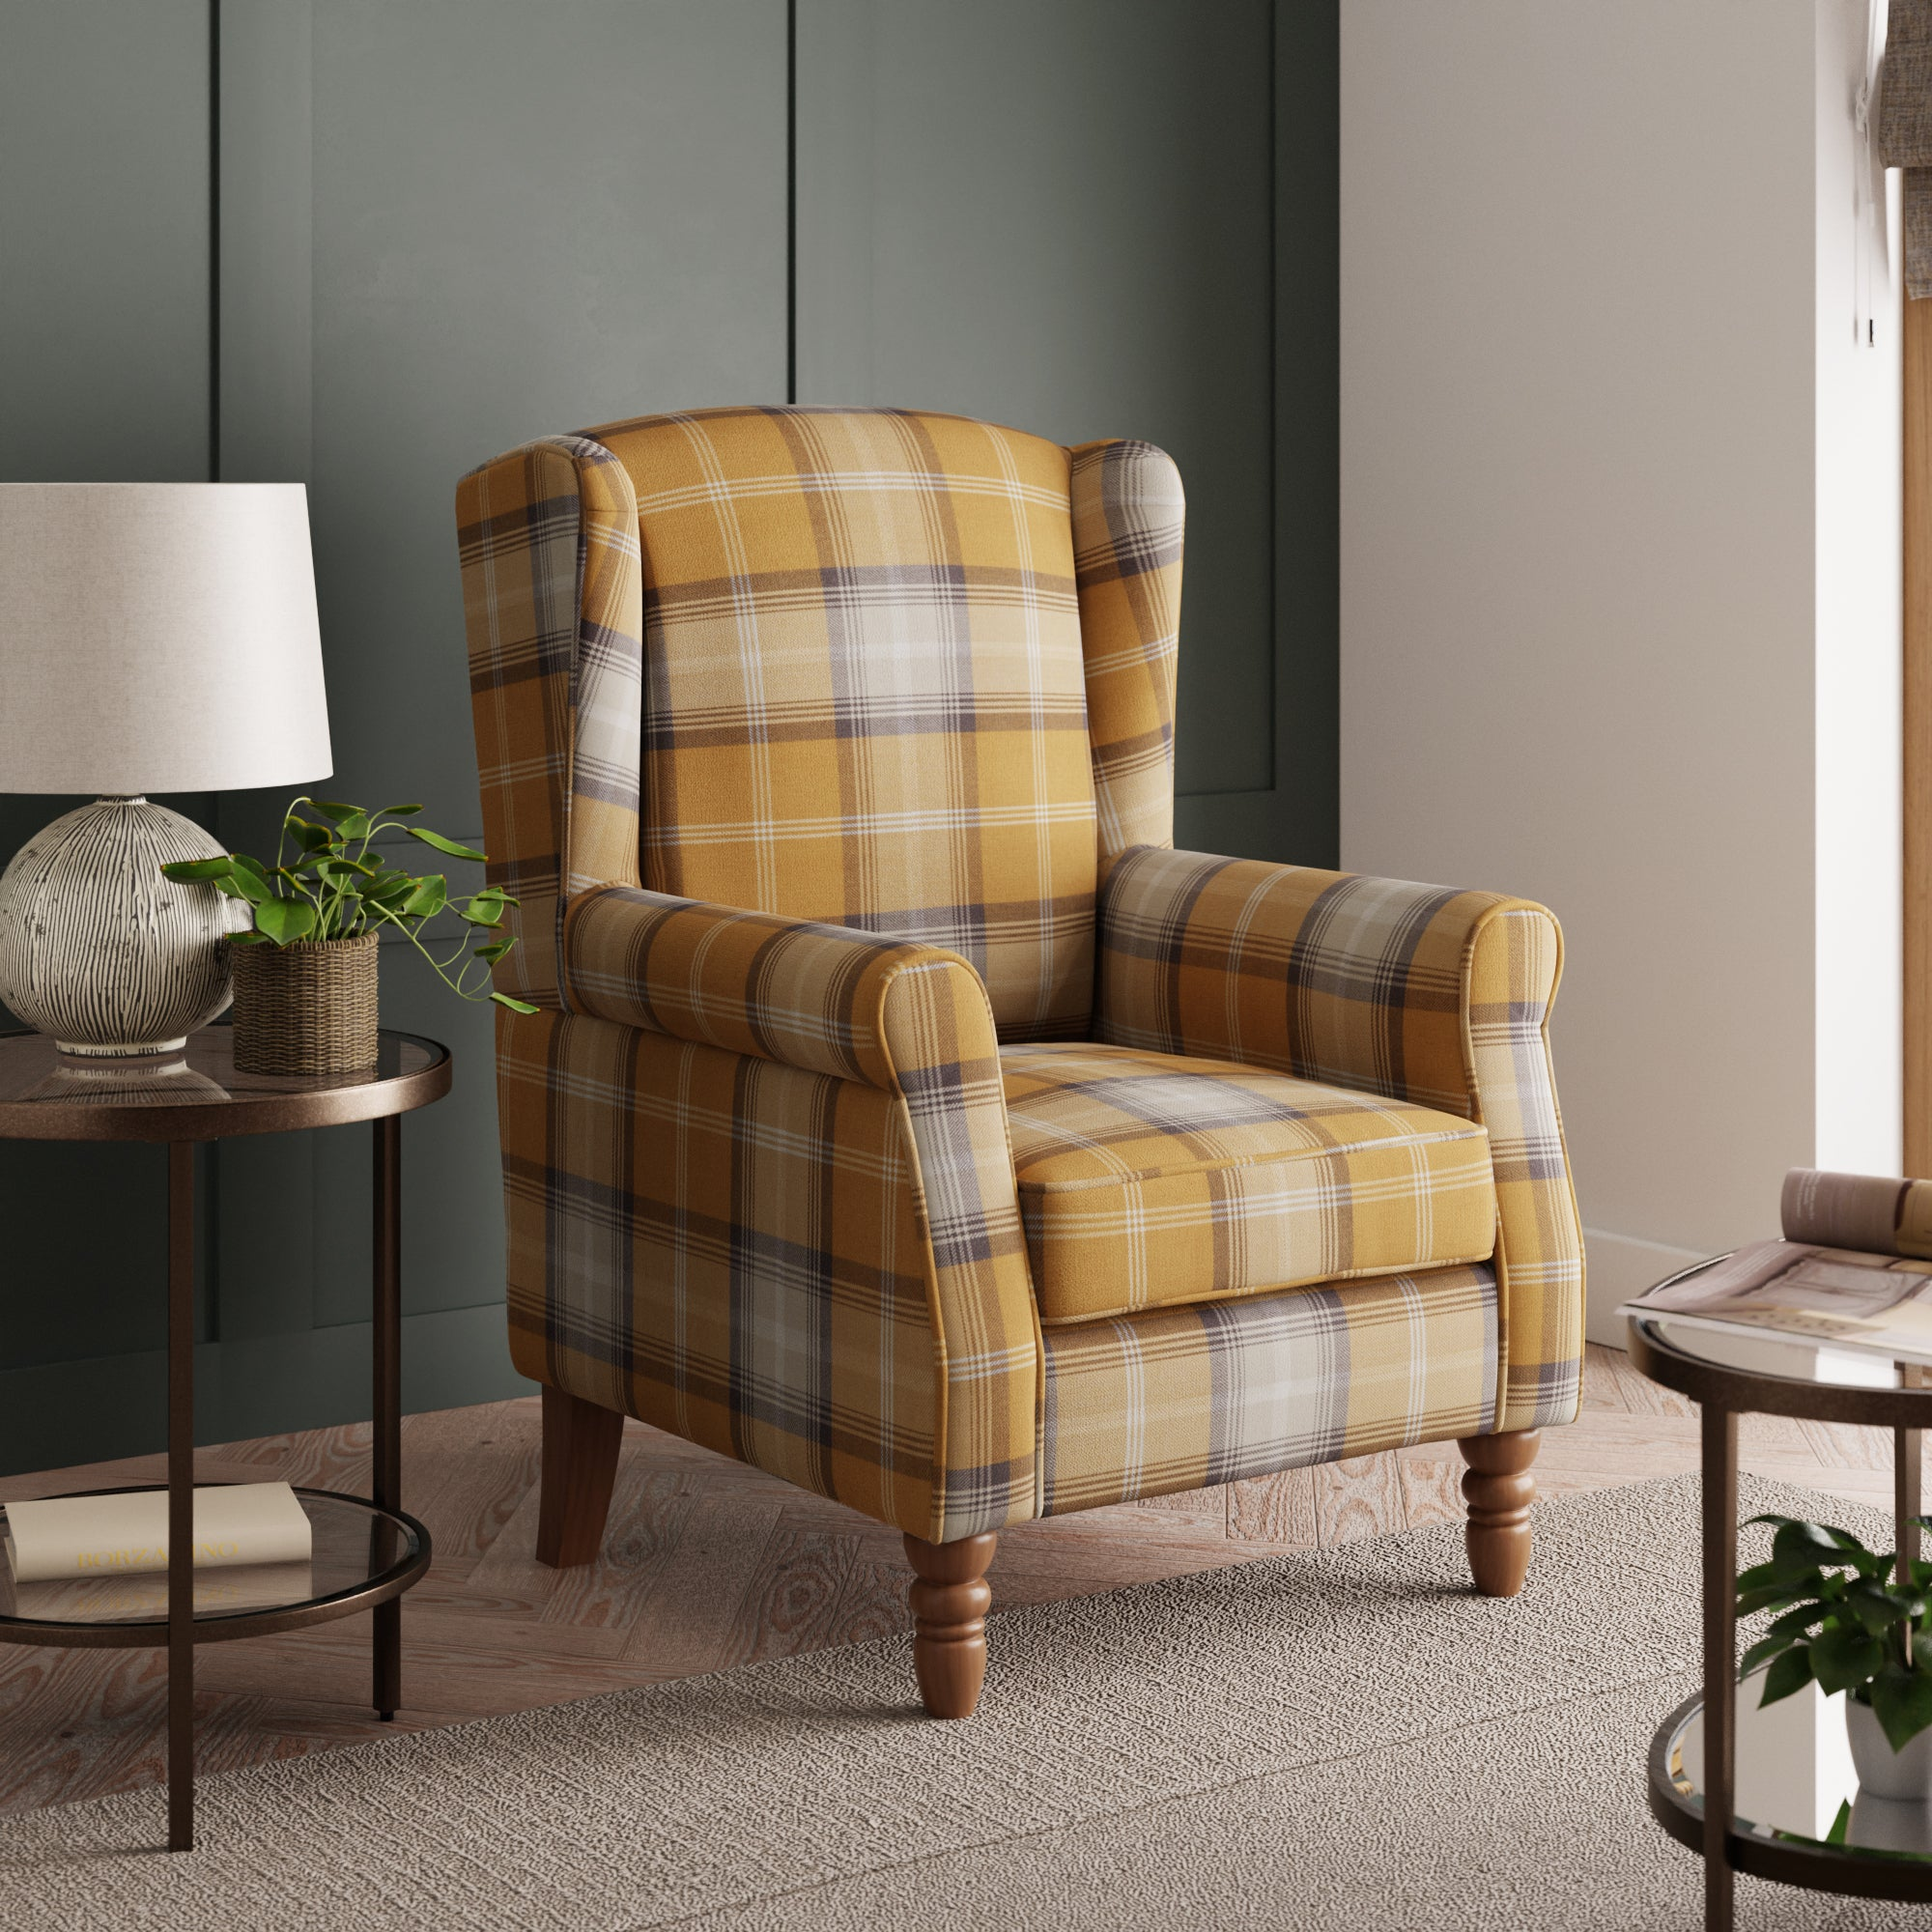 Oswald Check Wingback Armchair - Old Gold Old Gold